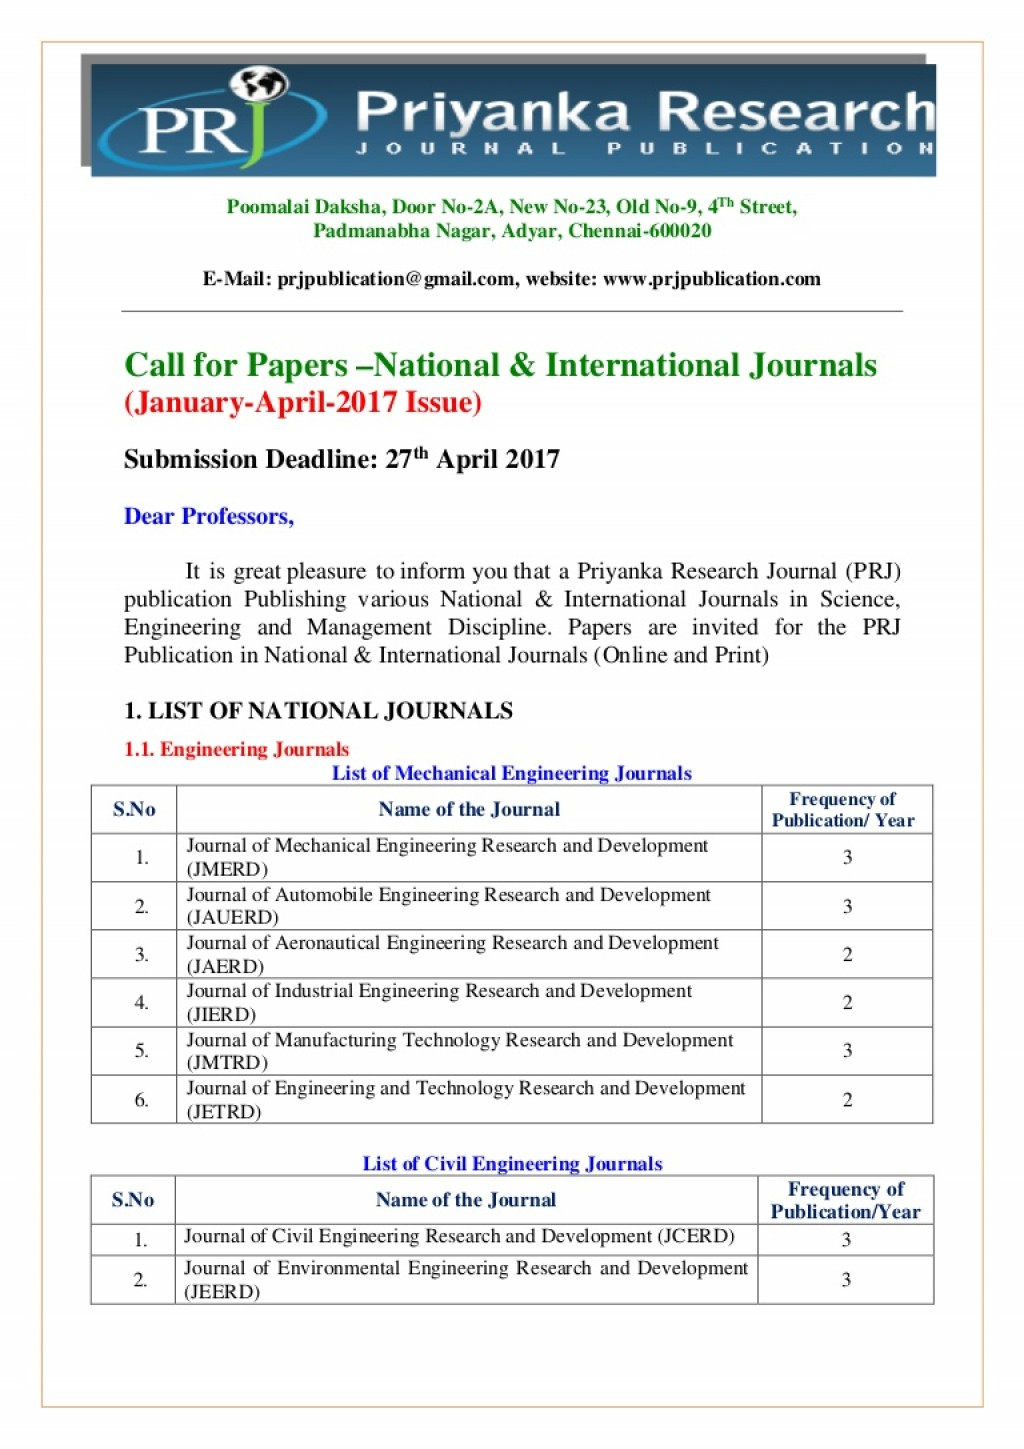 008 Prjpublicationcallforpaperjanapril2017 Thumbnail How To Publish Management Research Paper In International Archaicawful A Journal Large